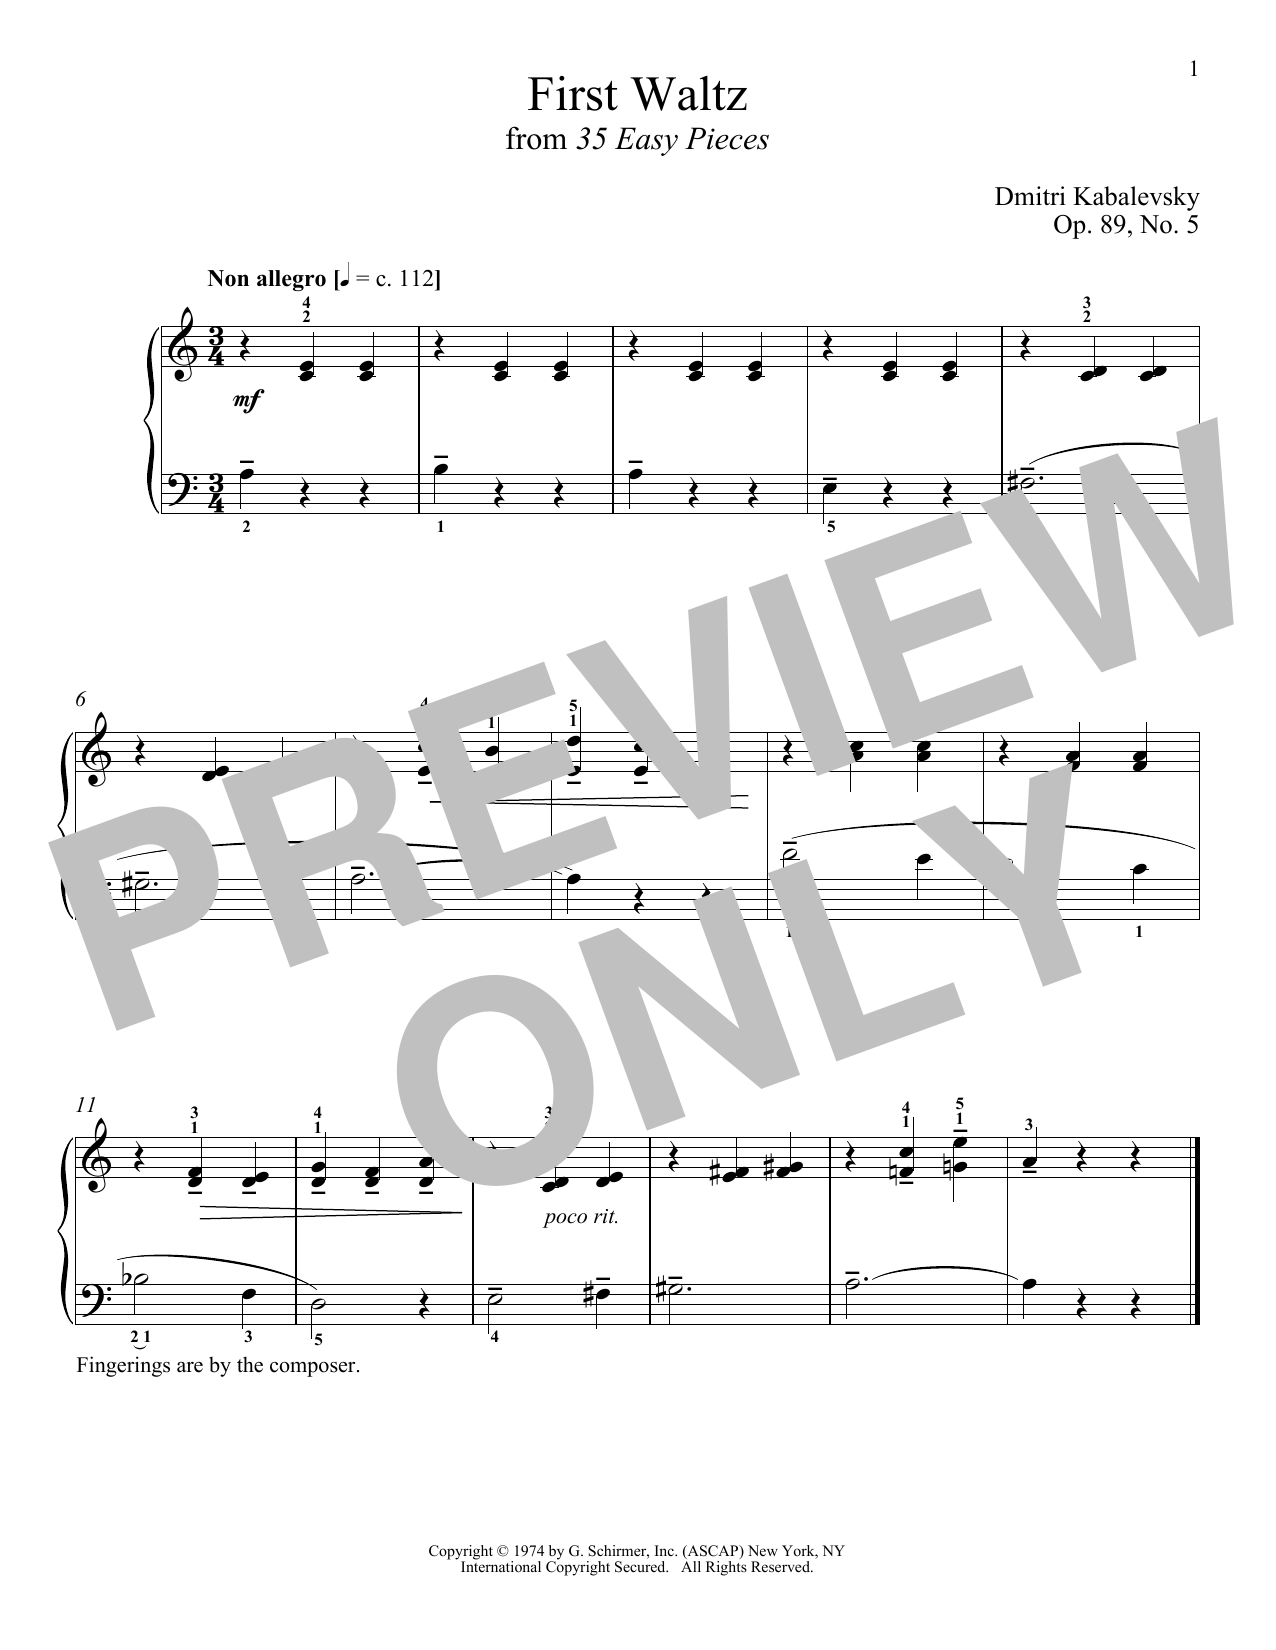 Dmitri Kabalevsky First Waltz sheet music notes and chords